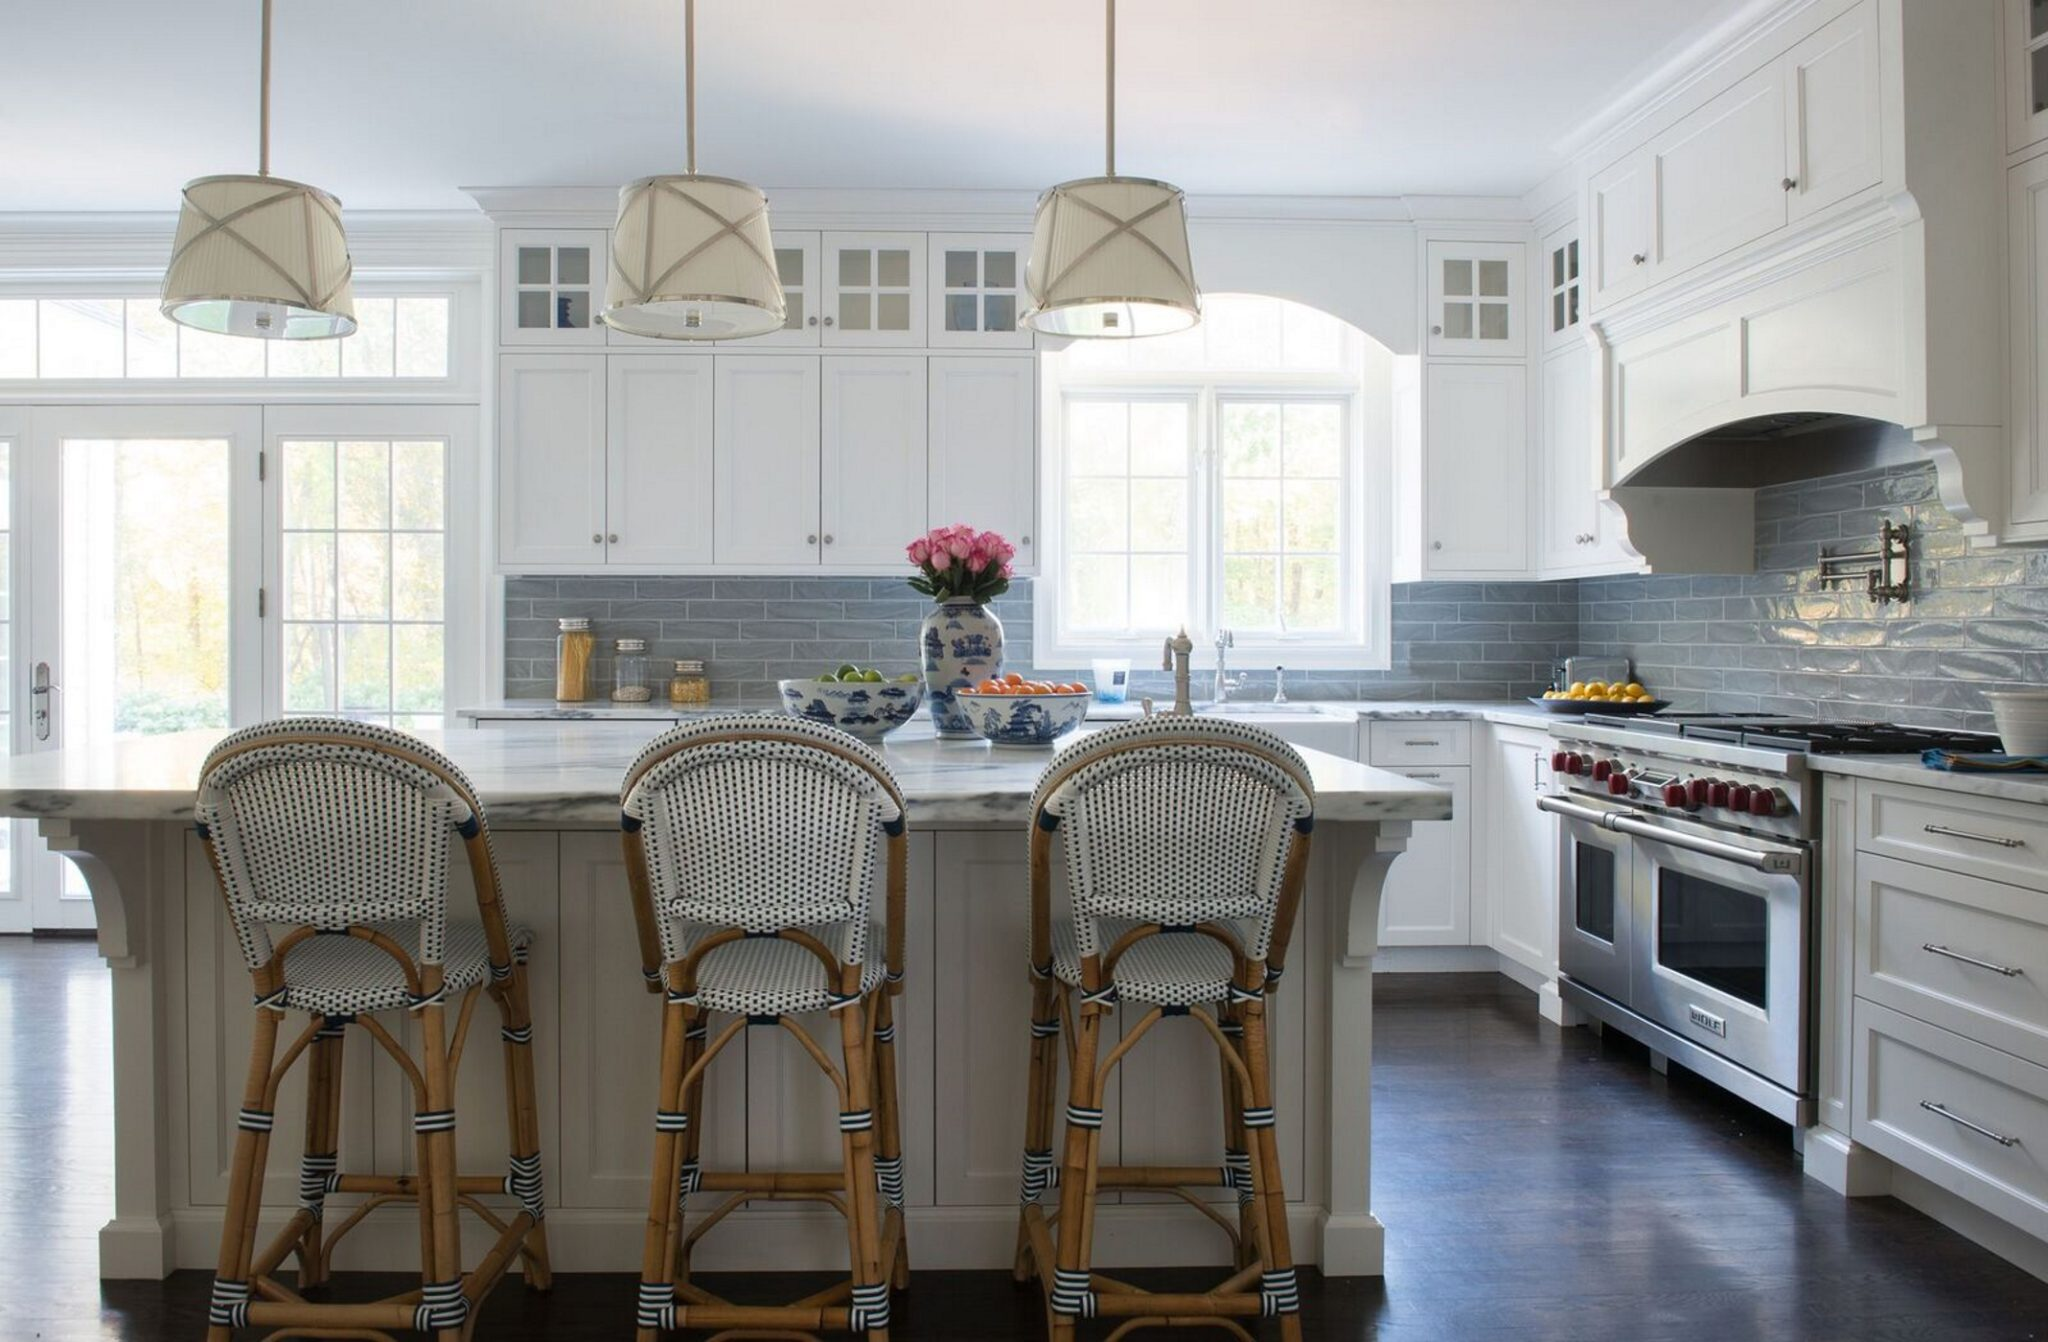 Kitchen island with seating area by Jill Kalman Interiors